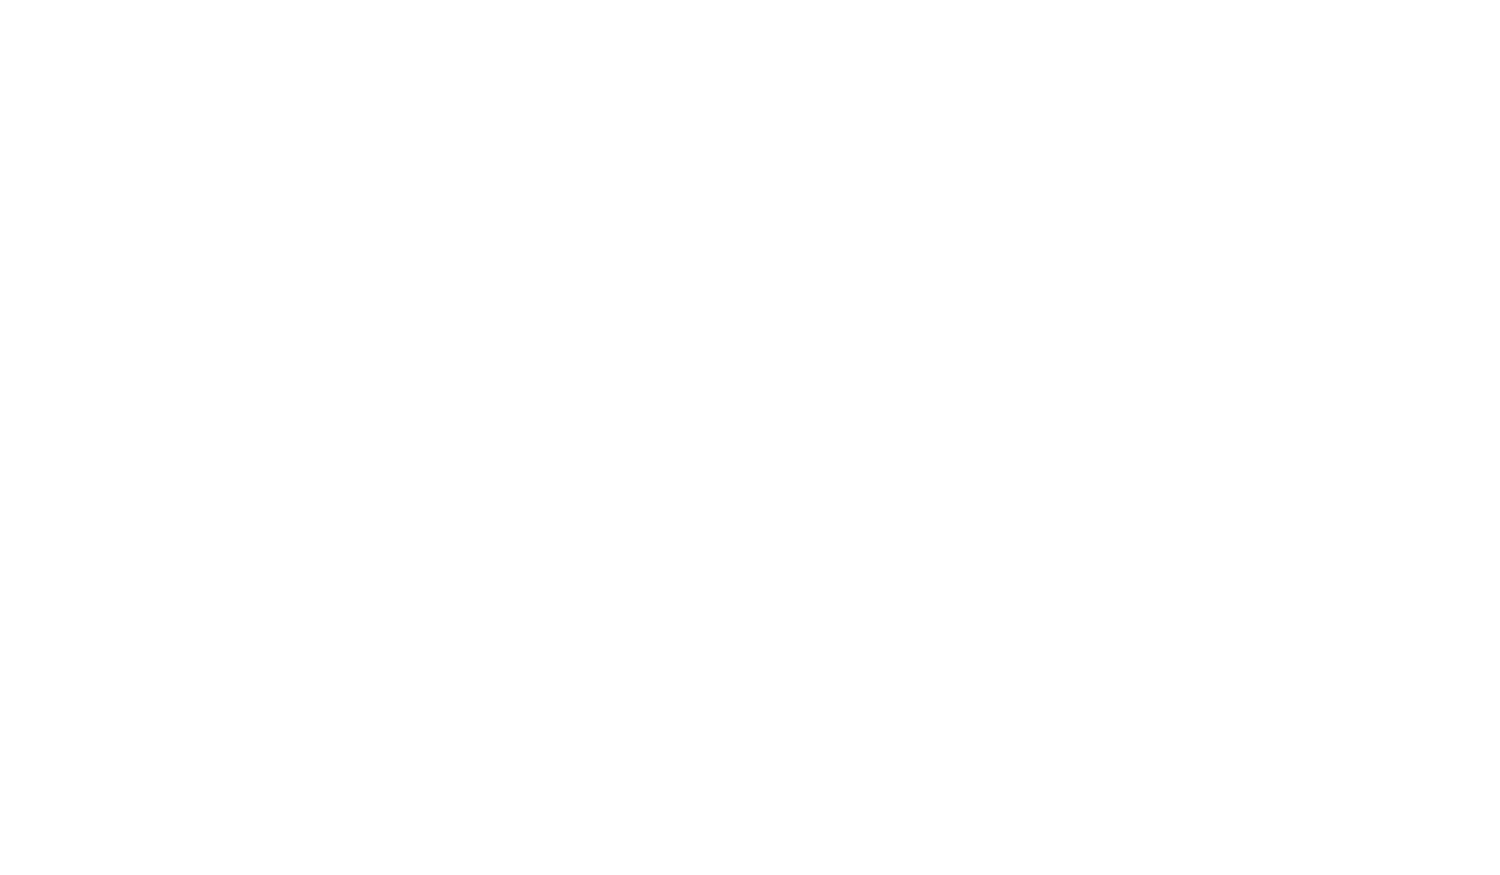 Ciminello's Landscape Design